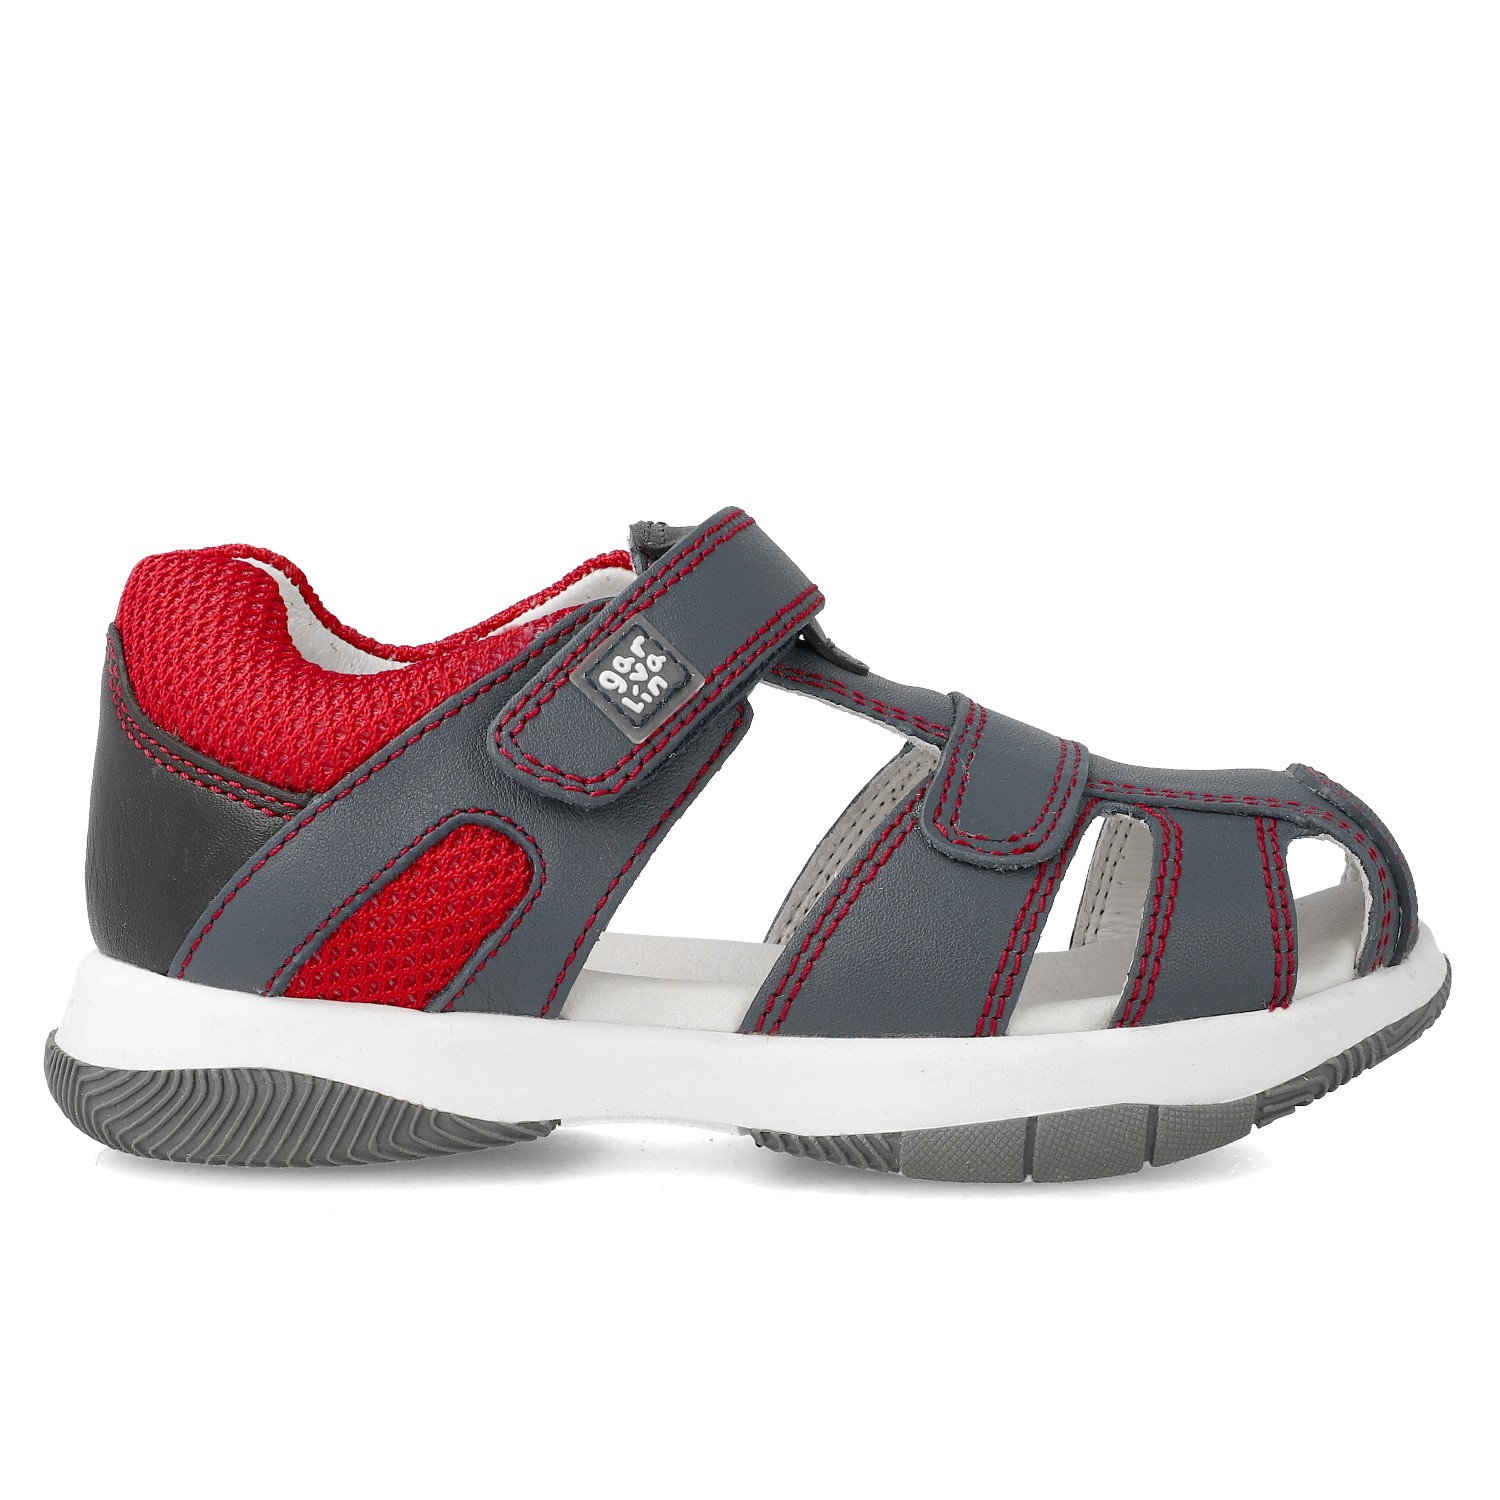 Leather sandals for boy César